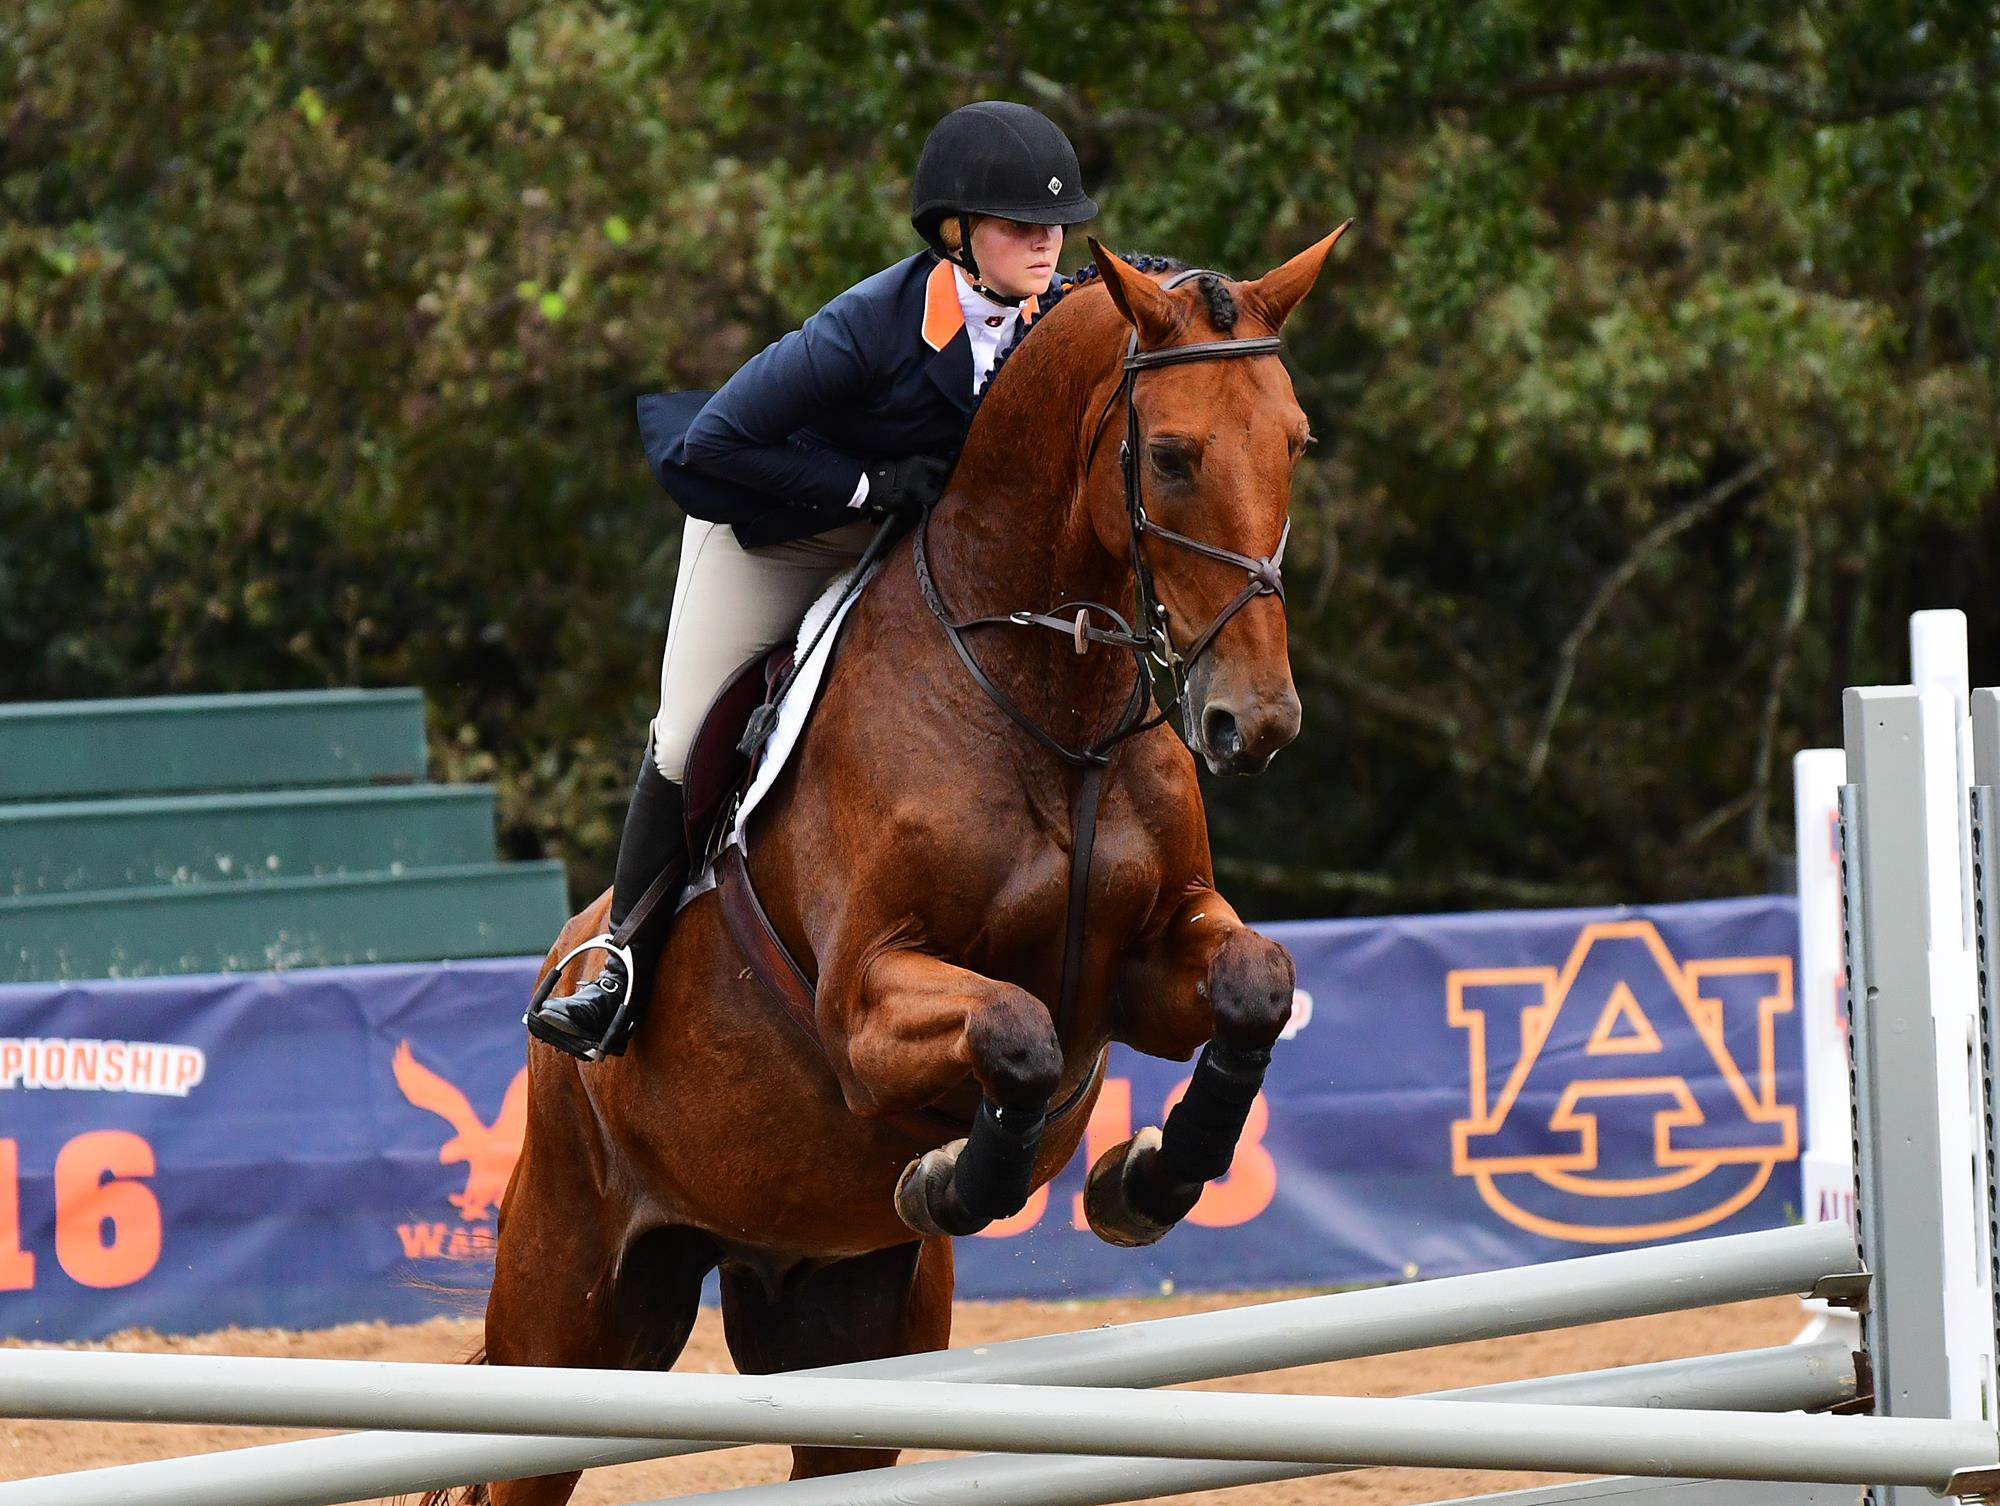 Boyle Alexander Earn Sec Riders Of The Month Auburn